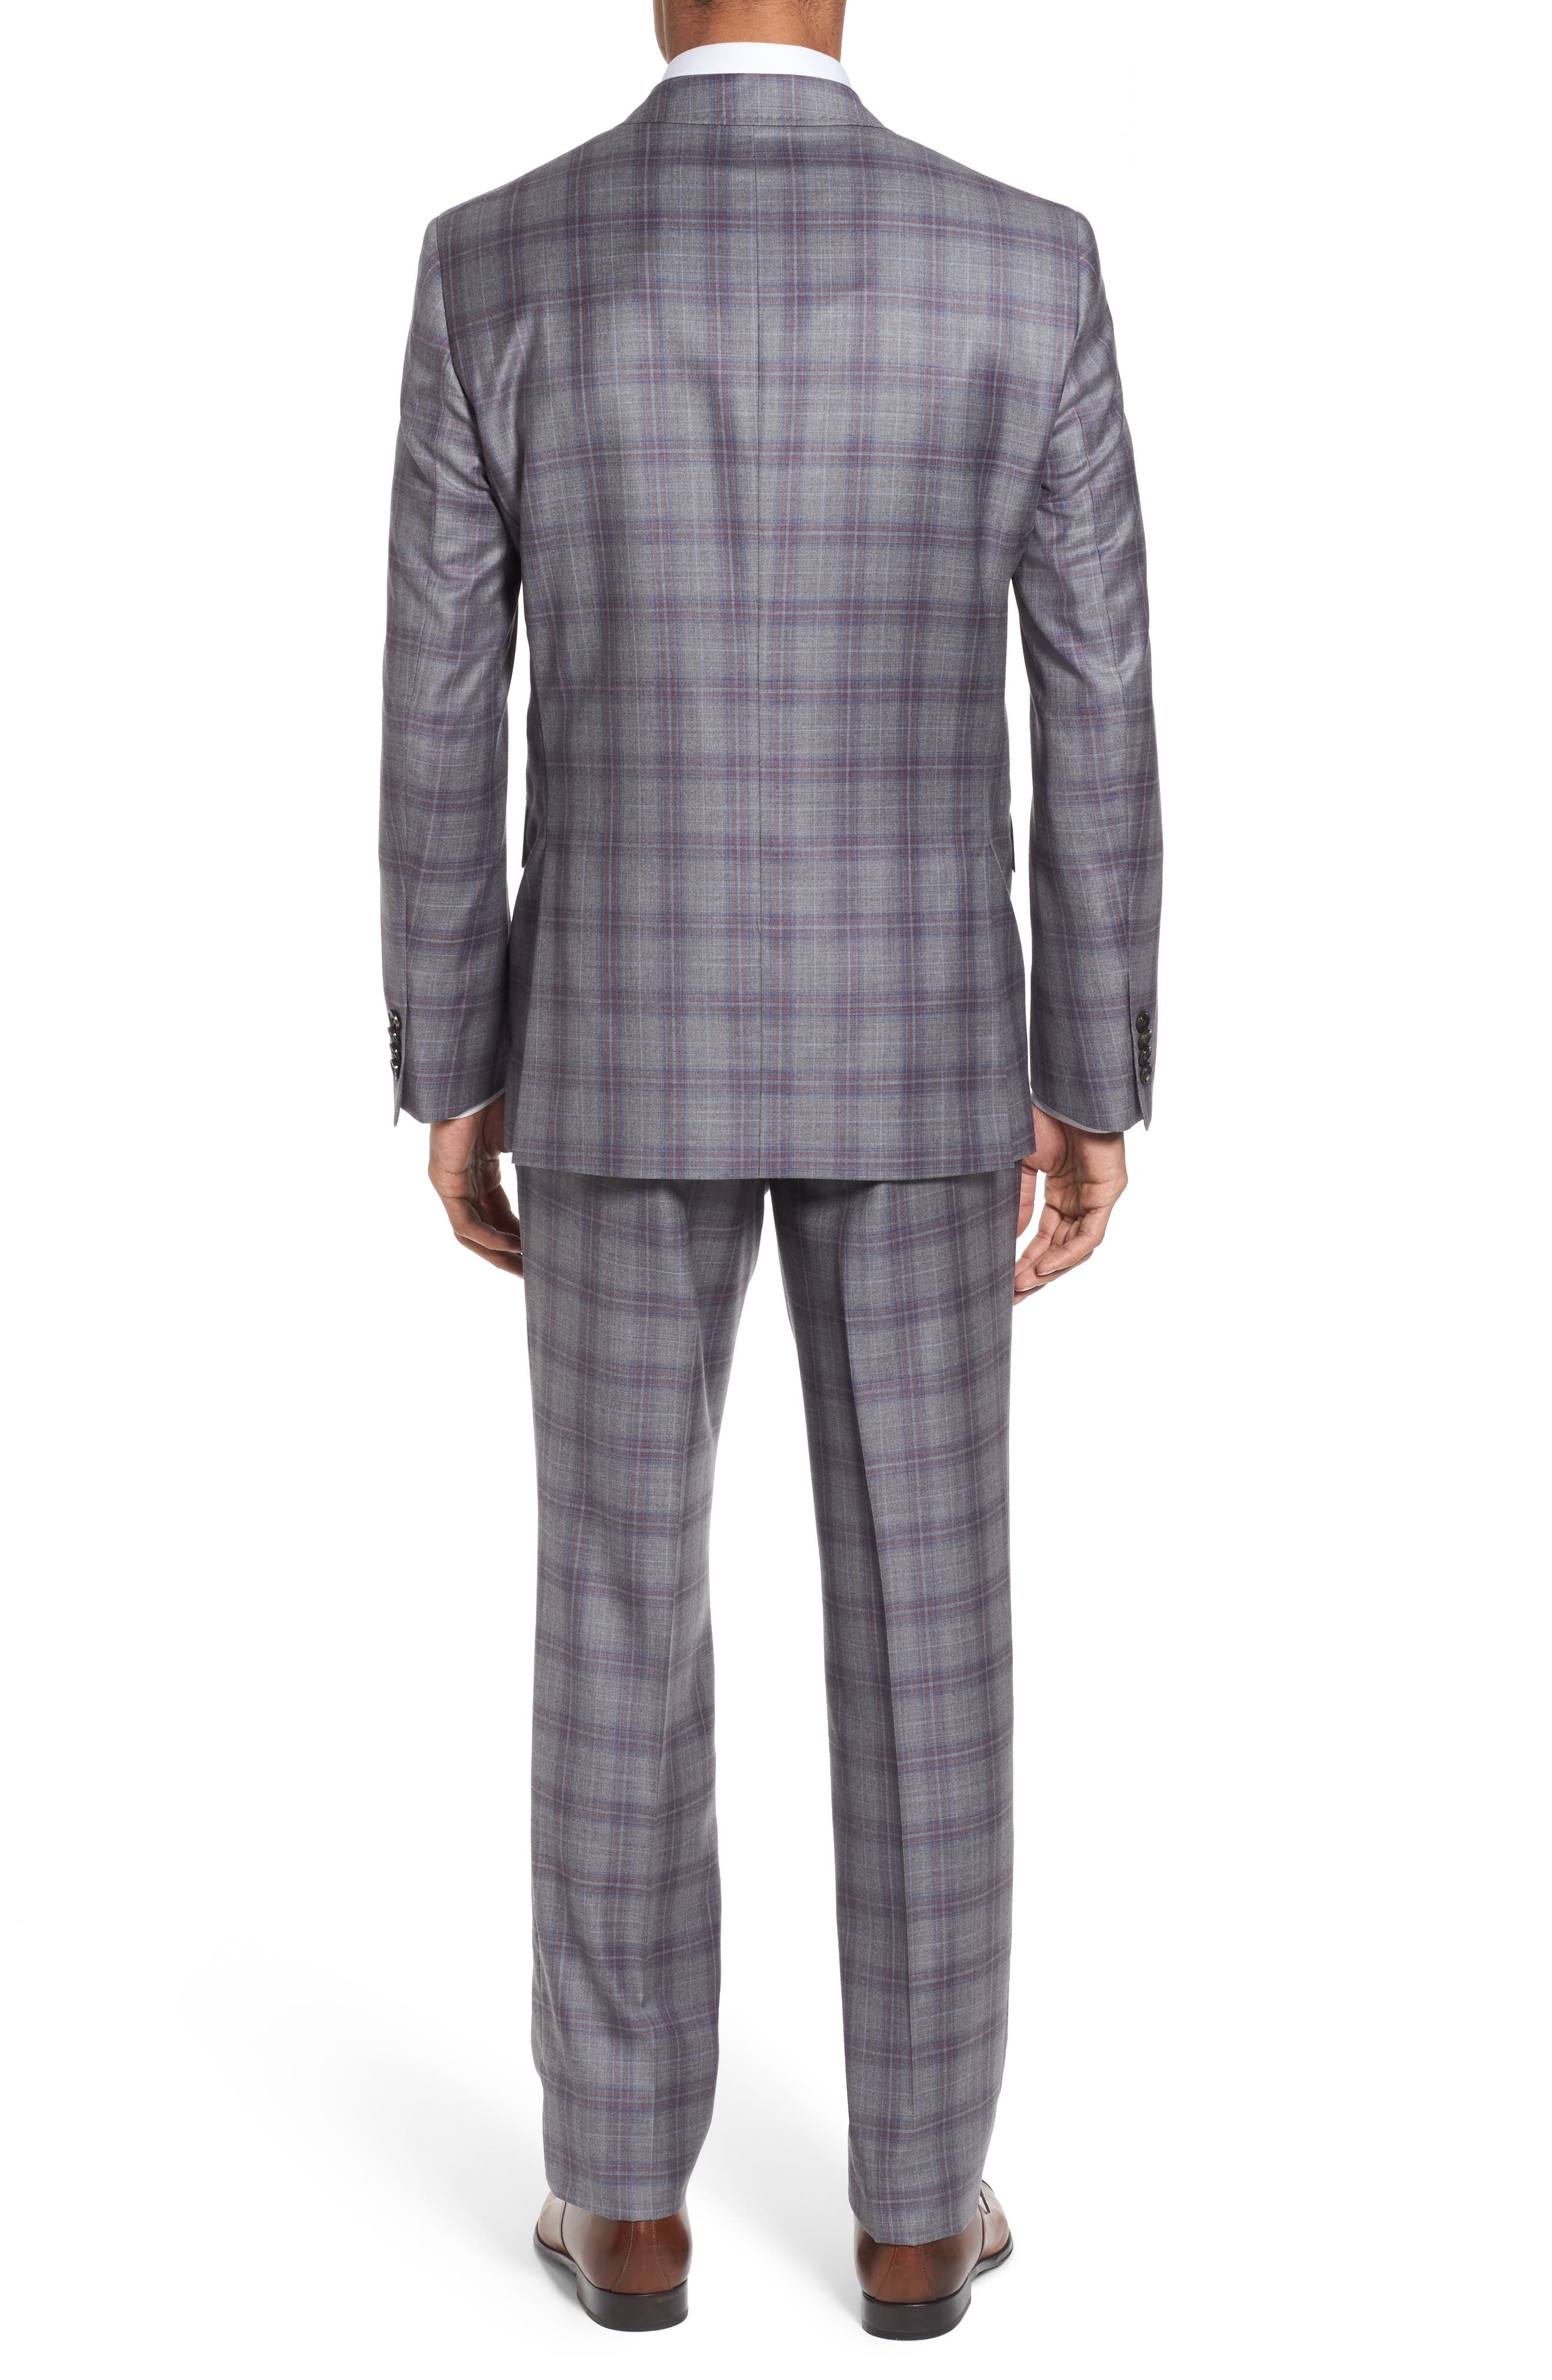 Jay Trim Fit Plaid Wool Suit,                             Alternate thumbnail 2, color,                             020